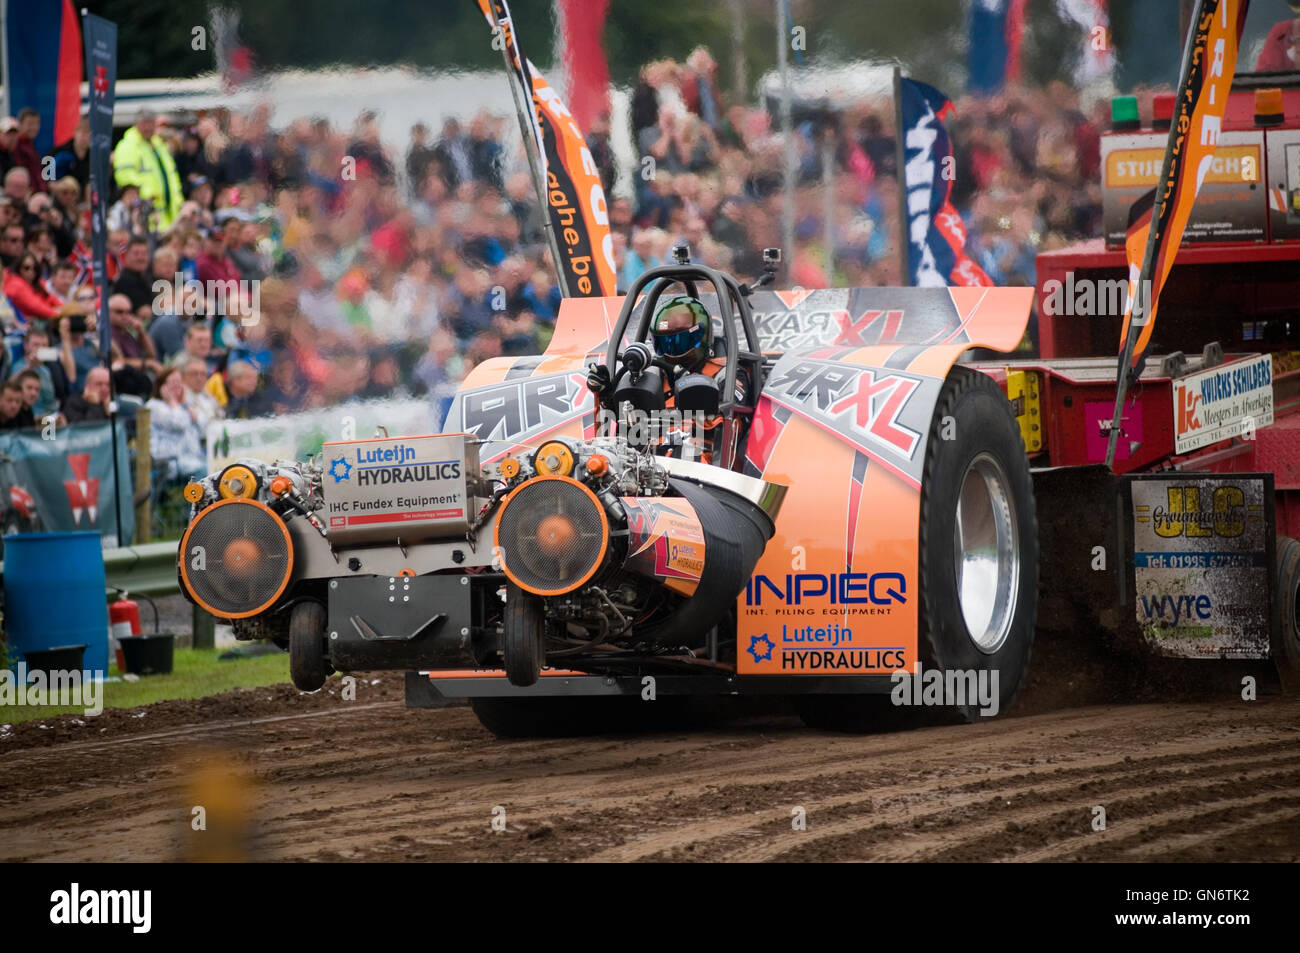 Tractor Pull Sled Flag : Jet engine powered ton modified tractor pulling a sled